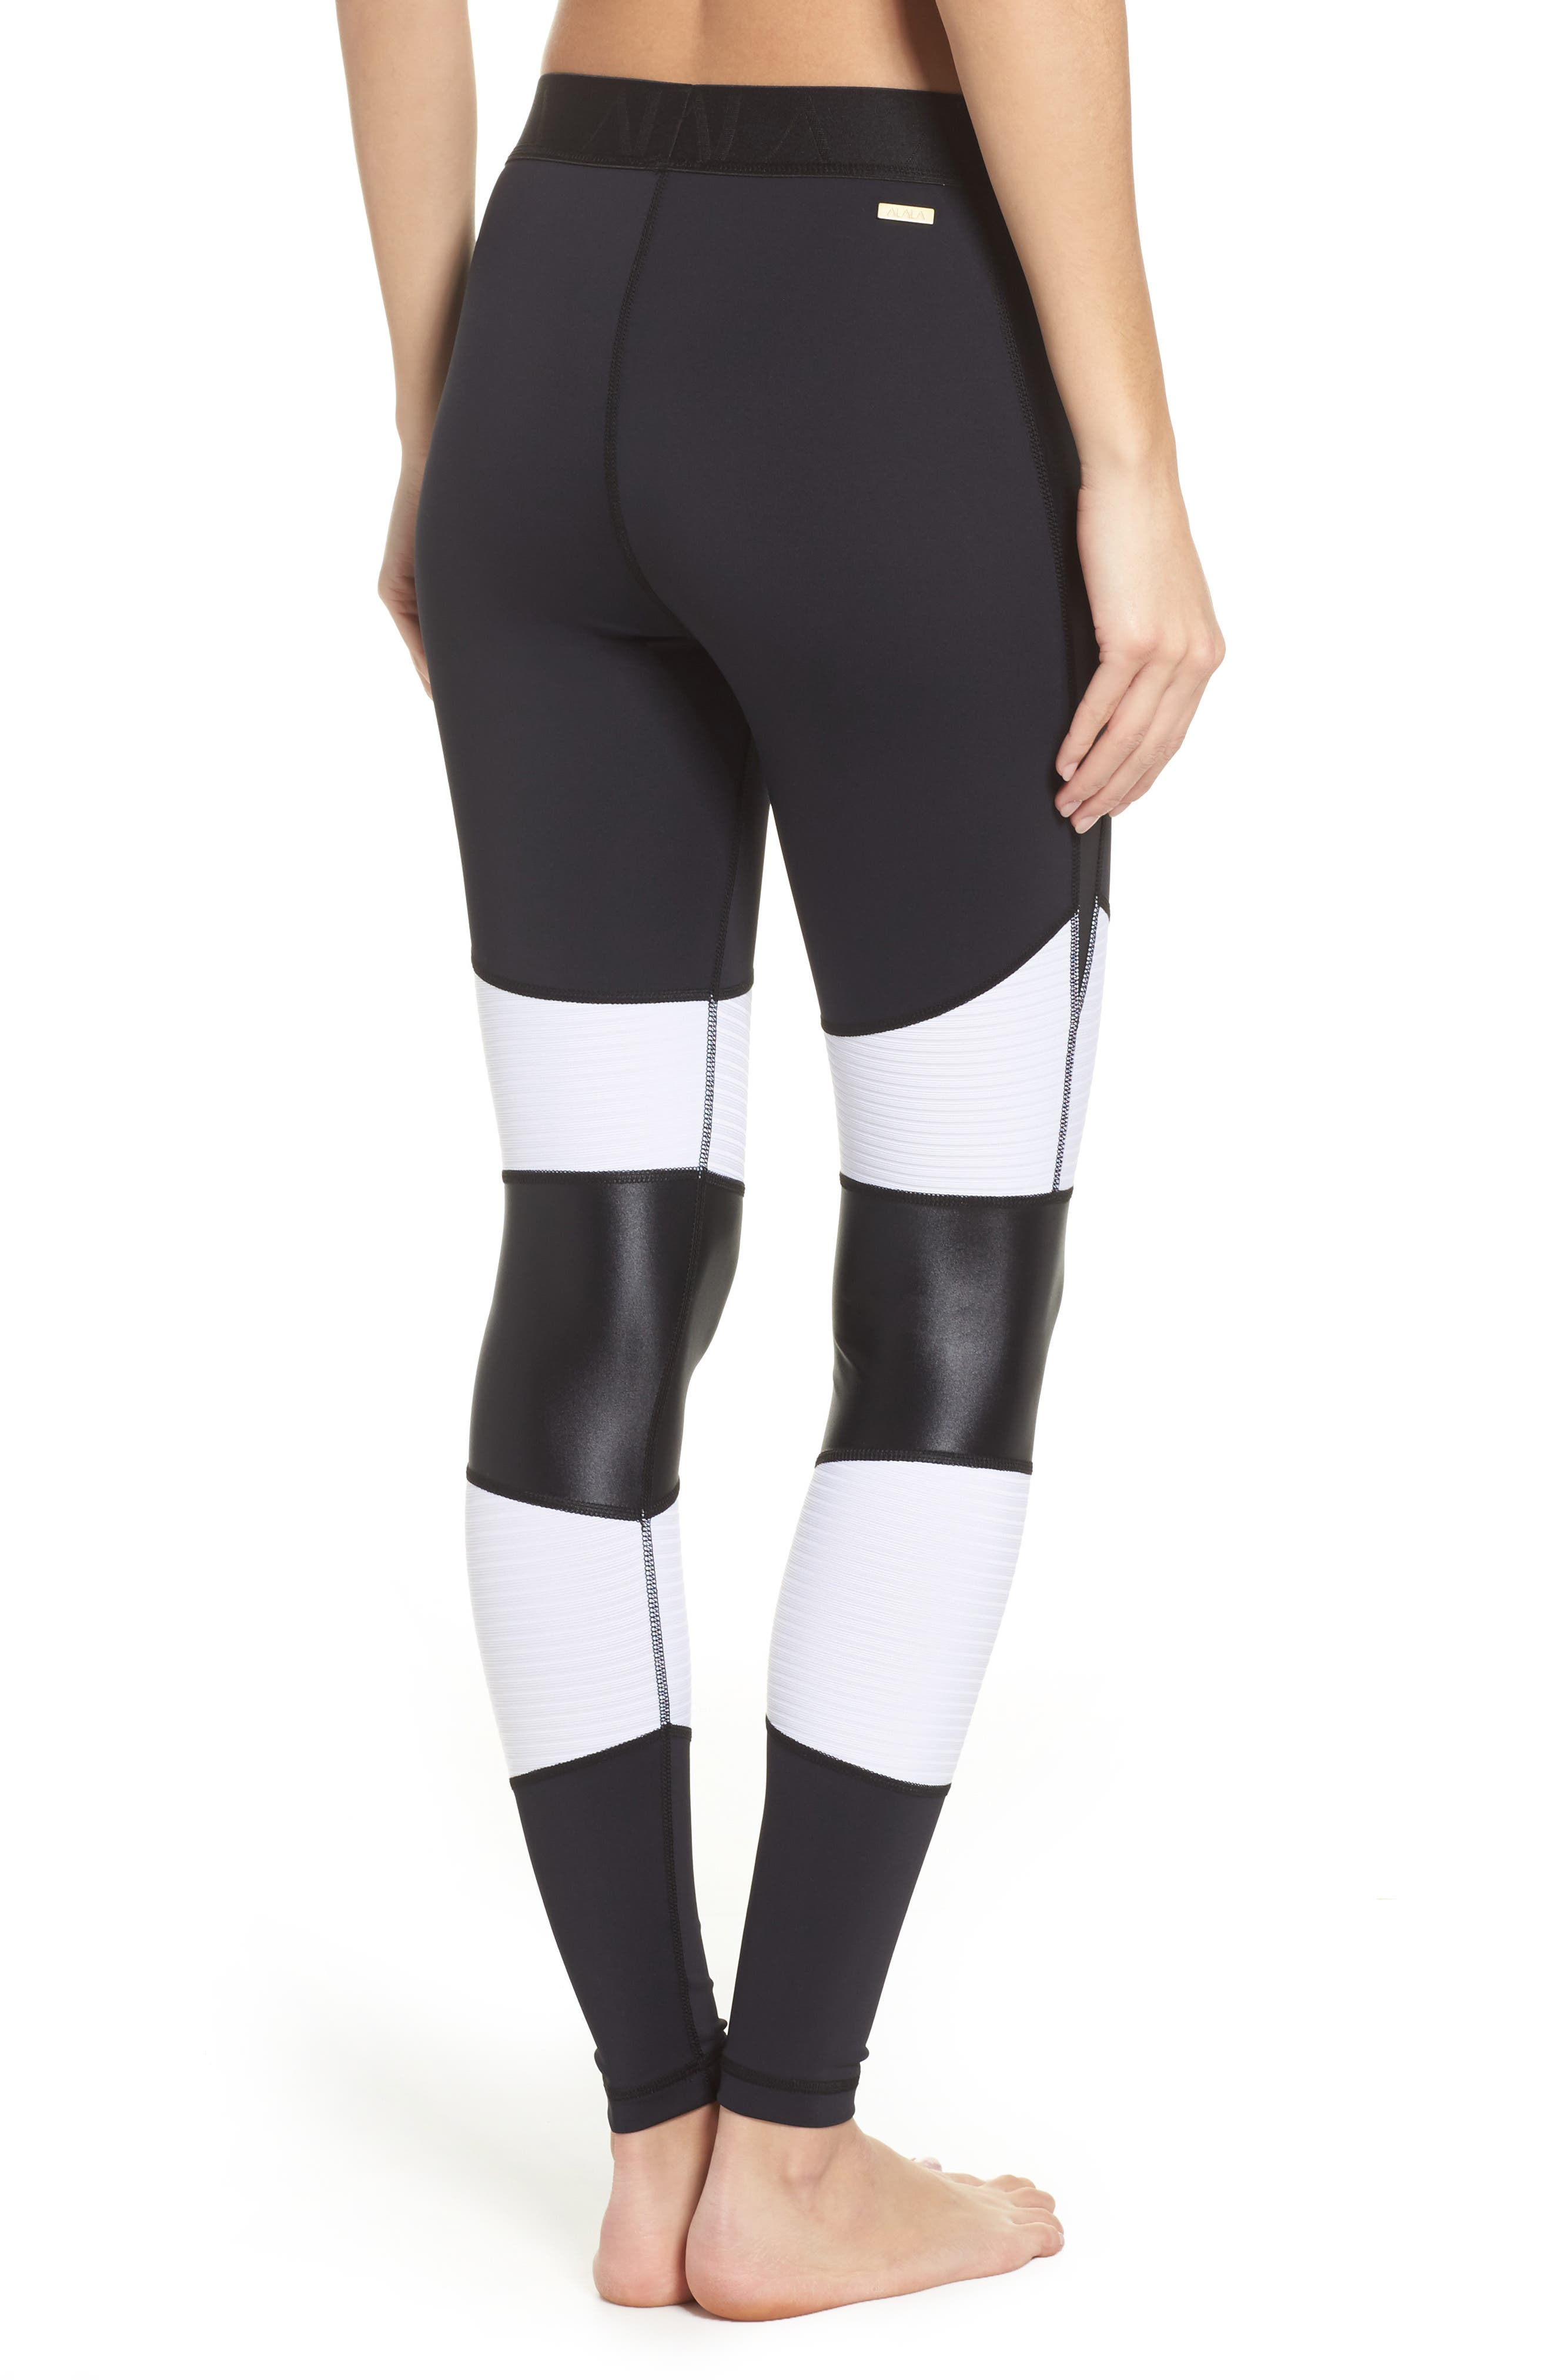 Harley Tights,                             Alternate thumbnail 2, color,                             White